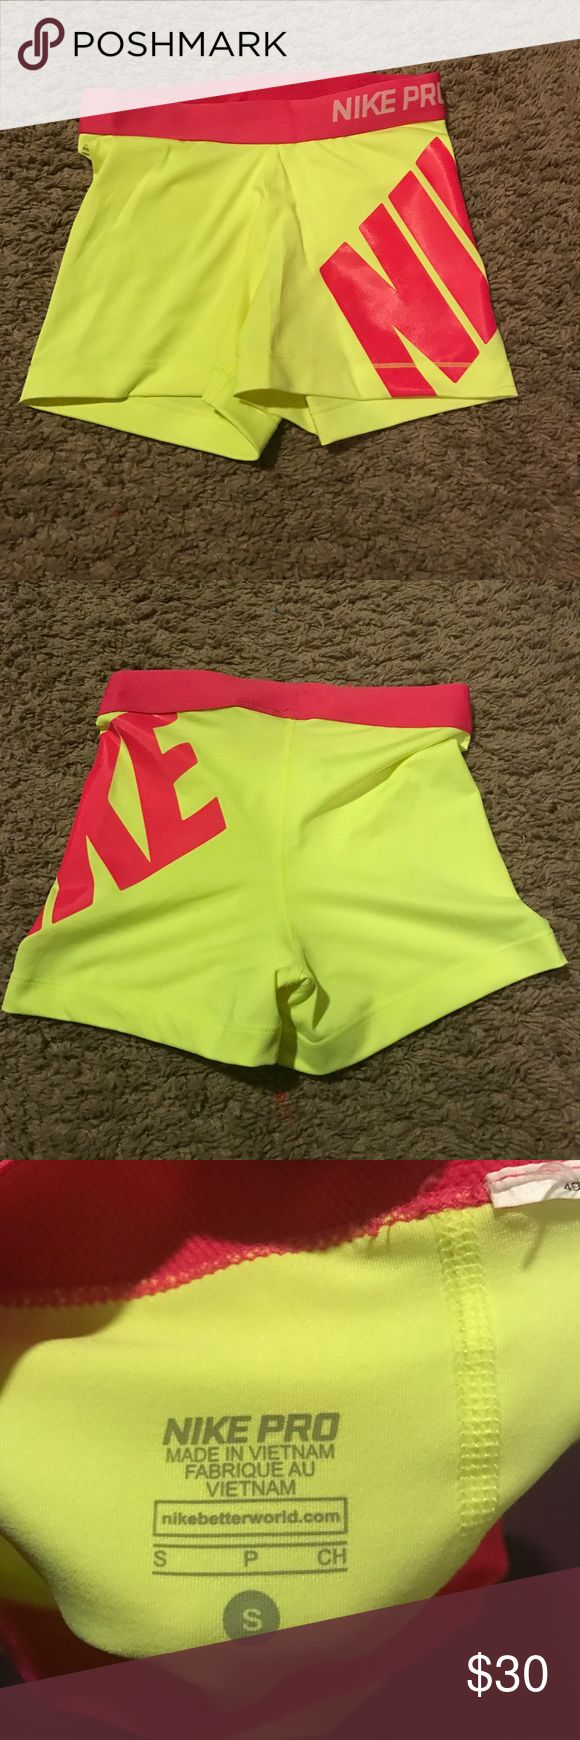 Nike Pro Bright Yellow Spandex Bring neon yellow and pink slender! Only worn once! Nothing wrong with them Nike Shorts